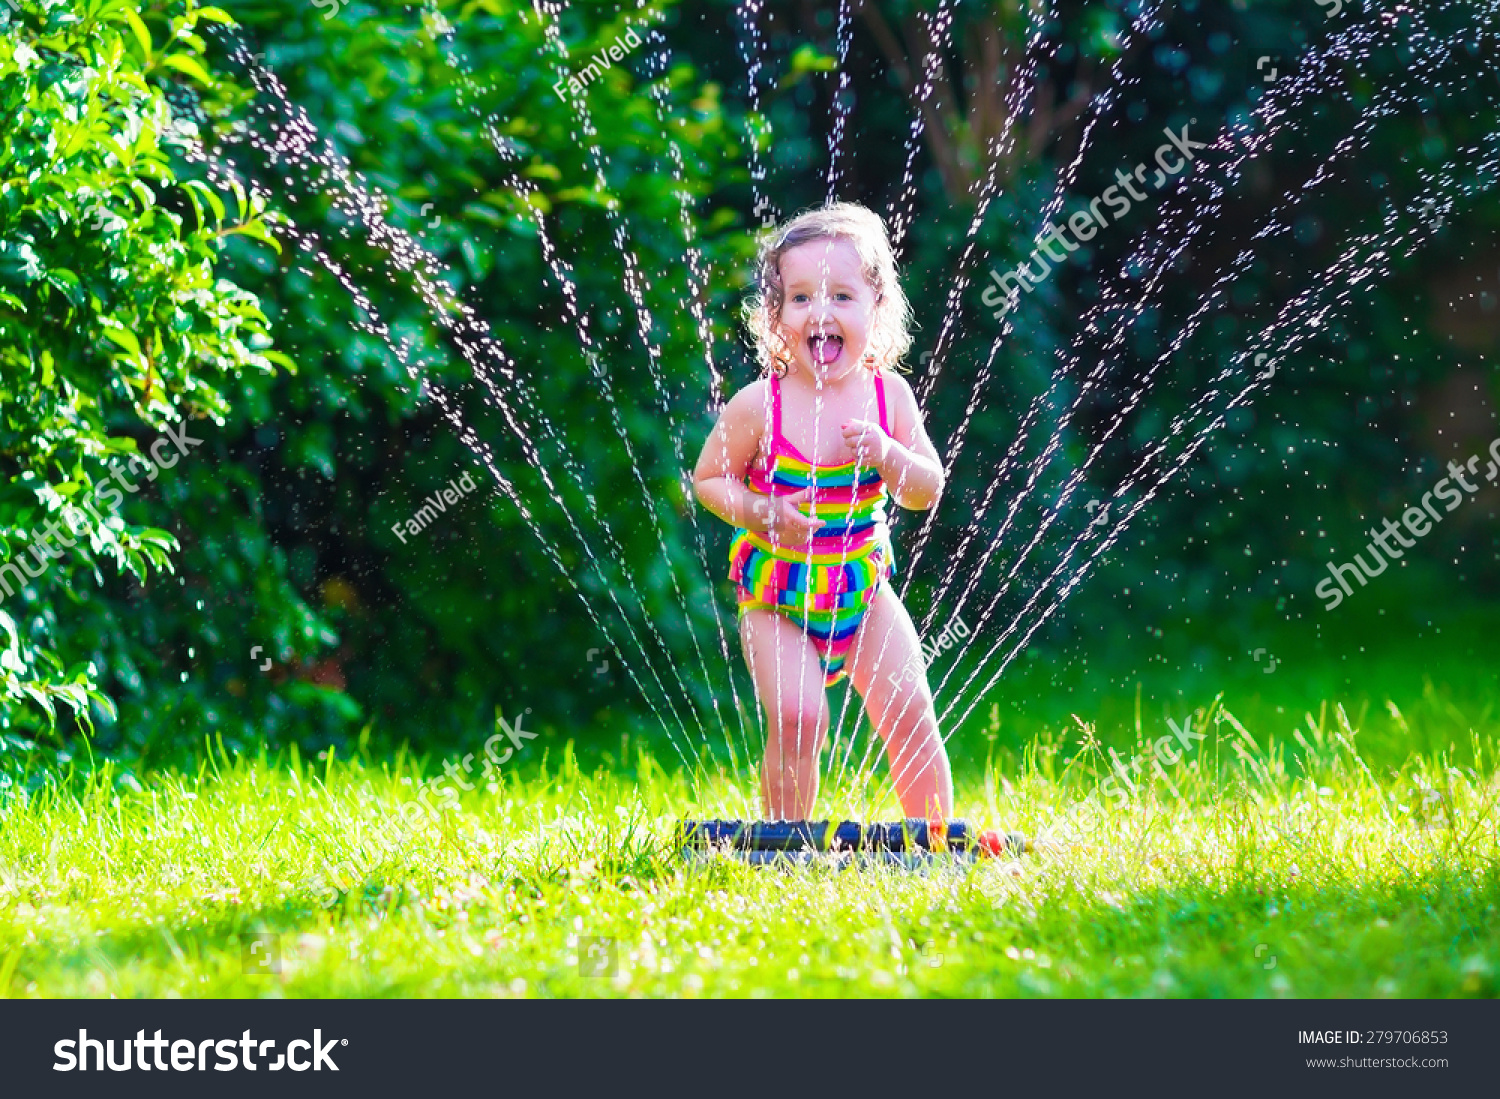 kids play water Child playing with garden sprinkler. Kid in bathing suit running and  jumping. Kids gardening